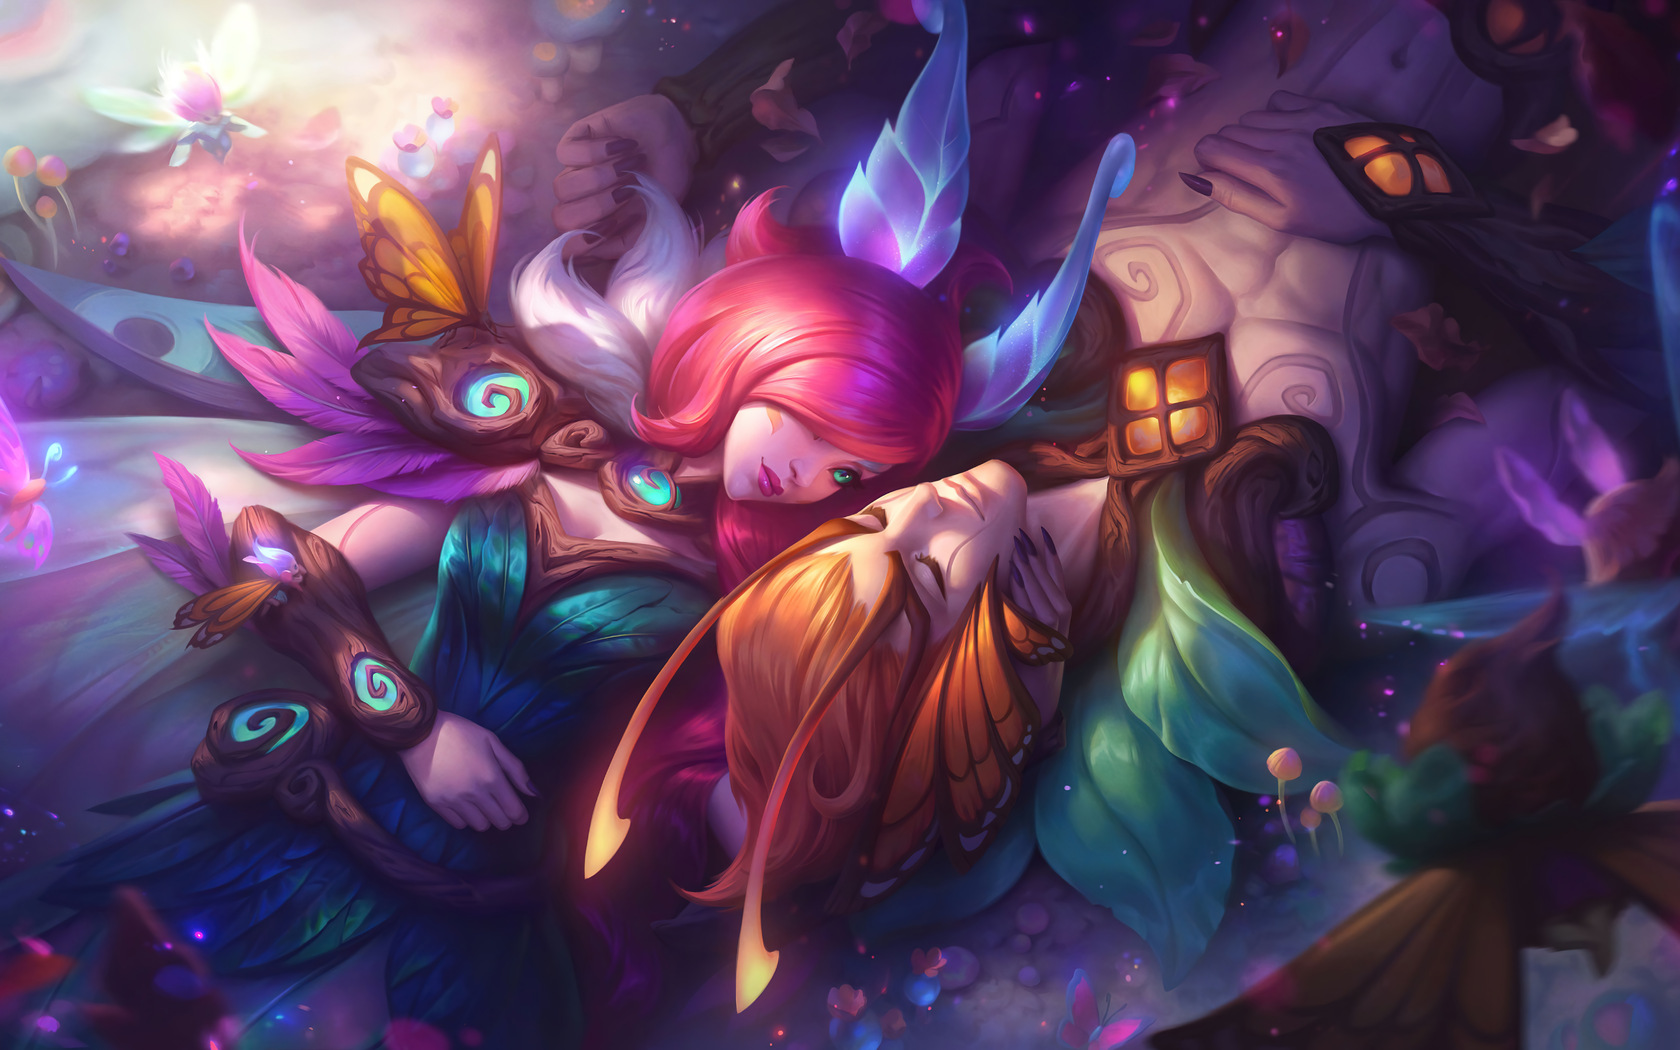 xayah-and-rakan-league-of-legends-8k-9g.jpg